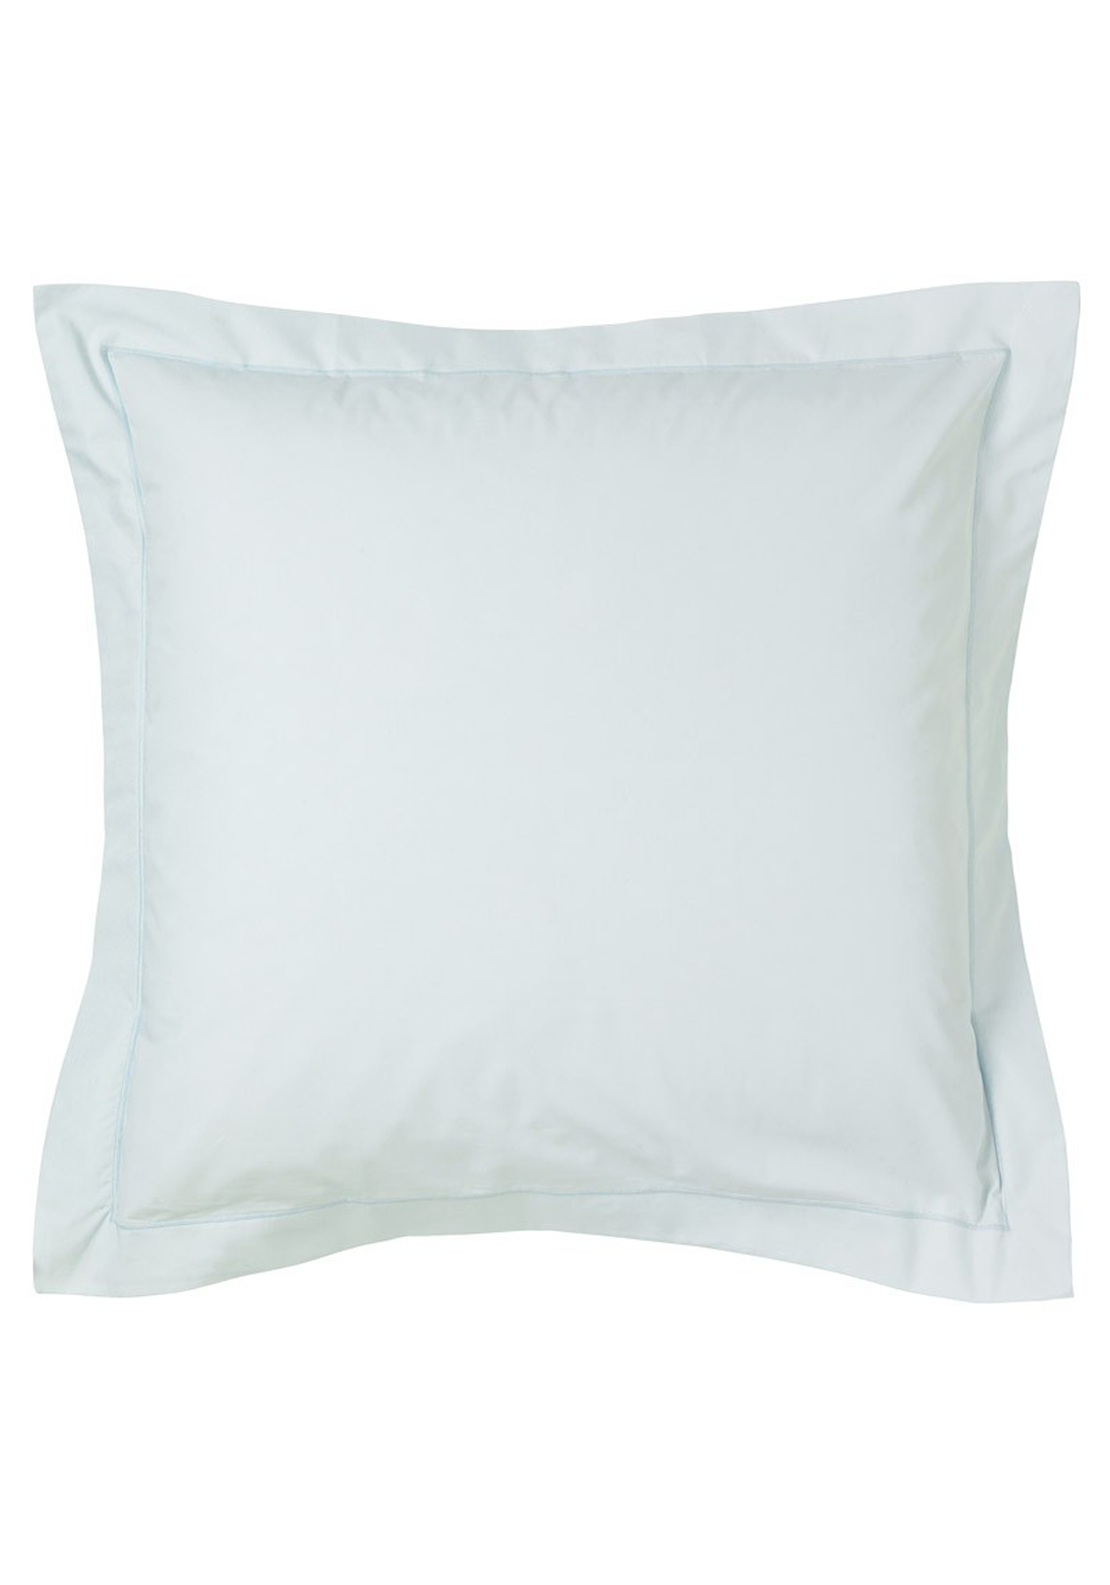 Fable Plain Dye Fitted Sheet, Duck Egg